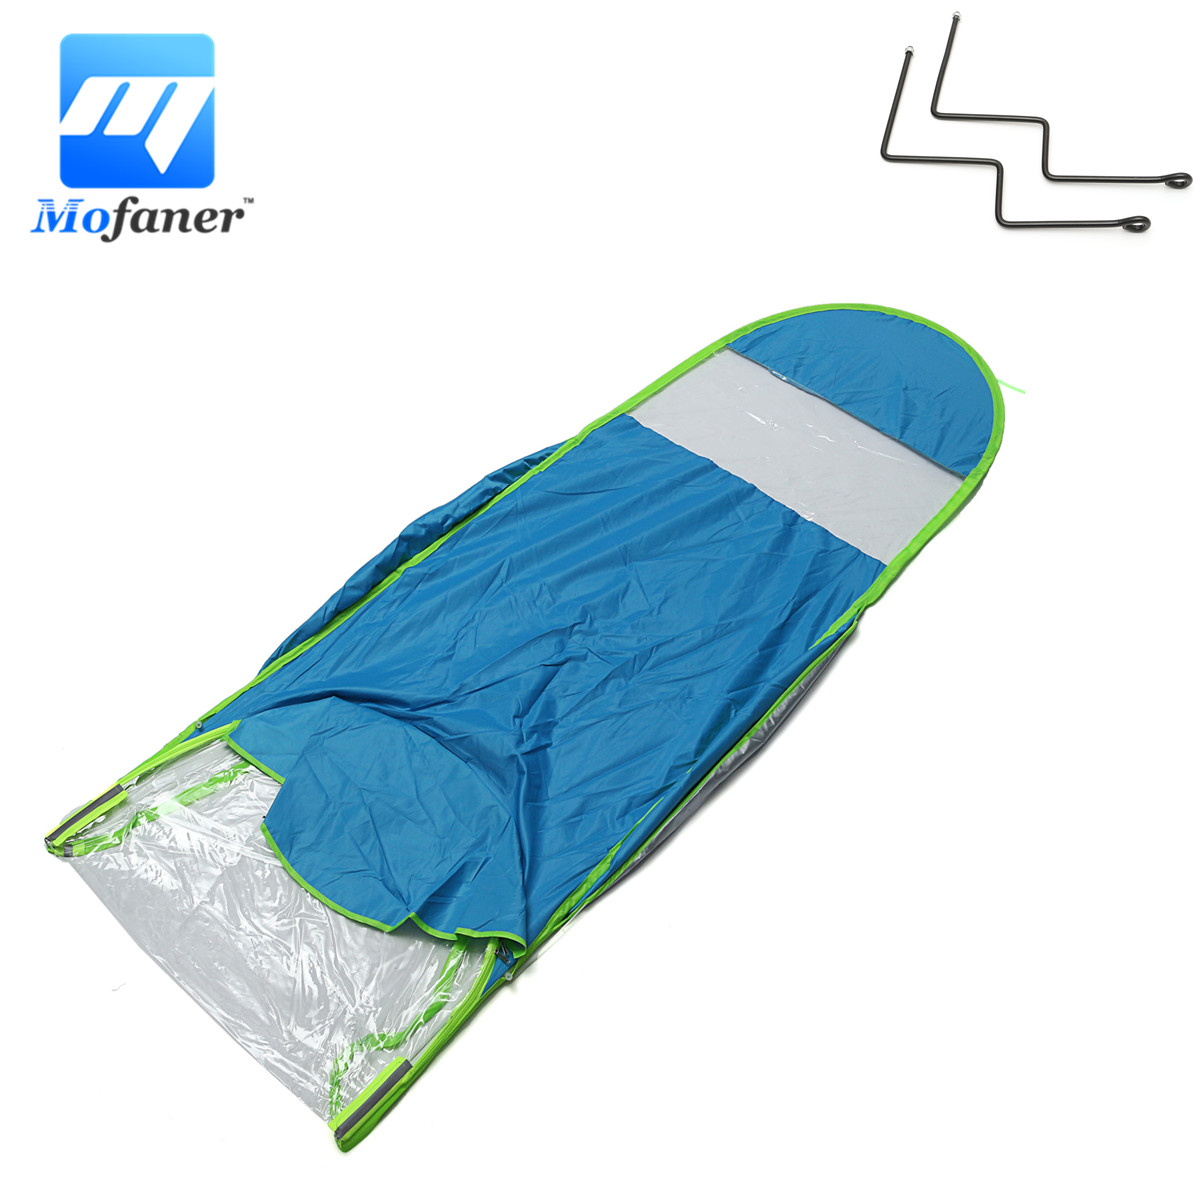 Automobiles & Motorcycles Motorcycle Scooter Cover Motorbike Sun Rain Wind Cover Electric Car Prevent Umbrella Raincoat 2.8*0.8*0.75m